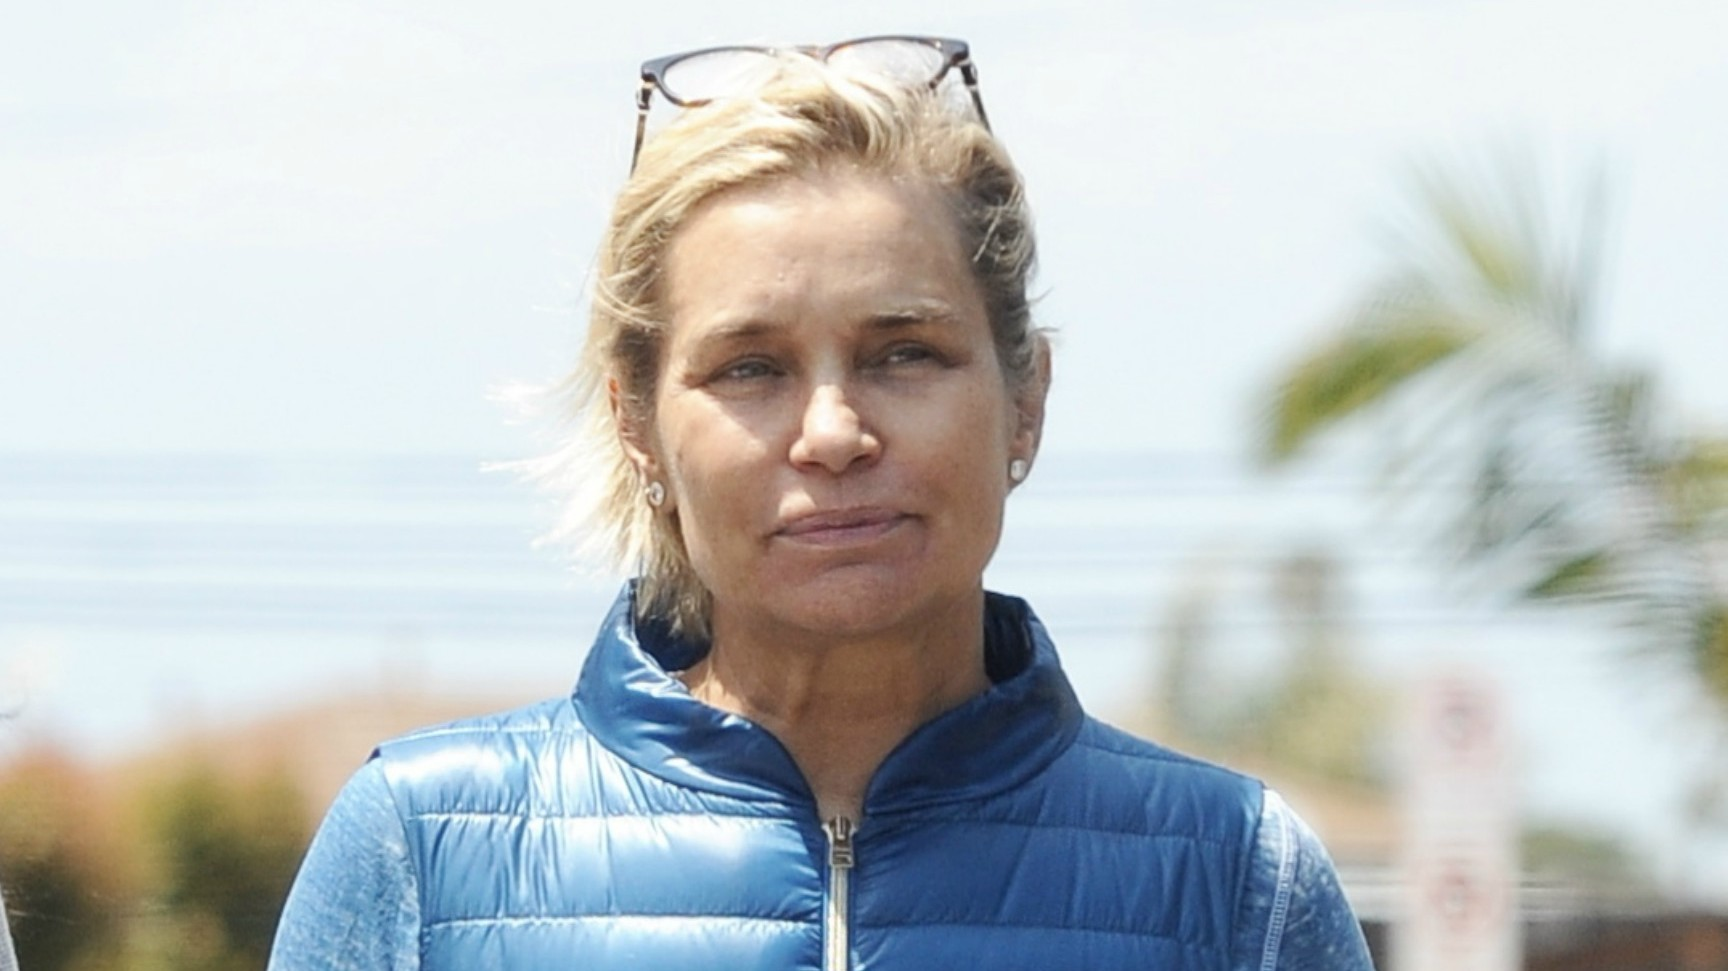 David Fosters Daughters Destroyed Yolanda Hadids Claims About Her Health